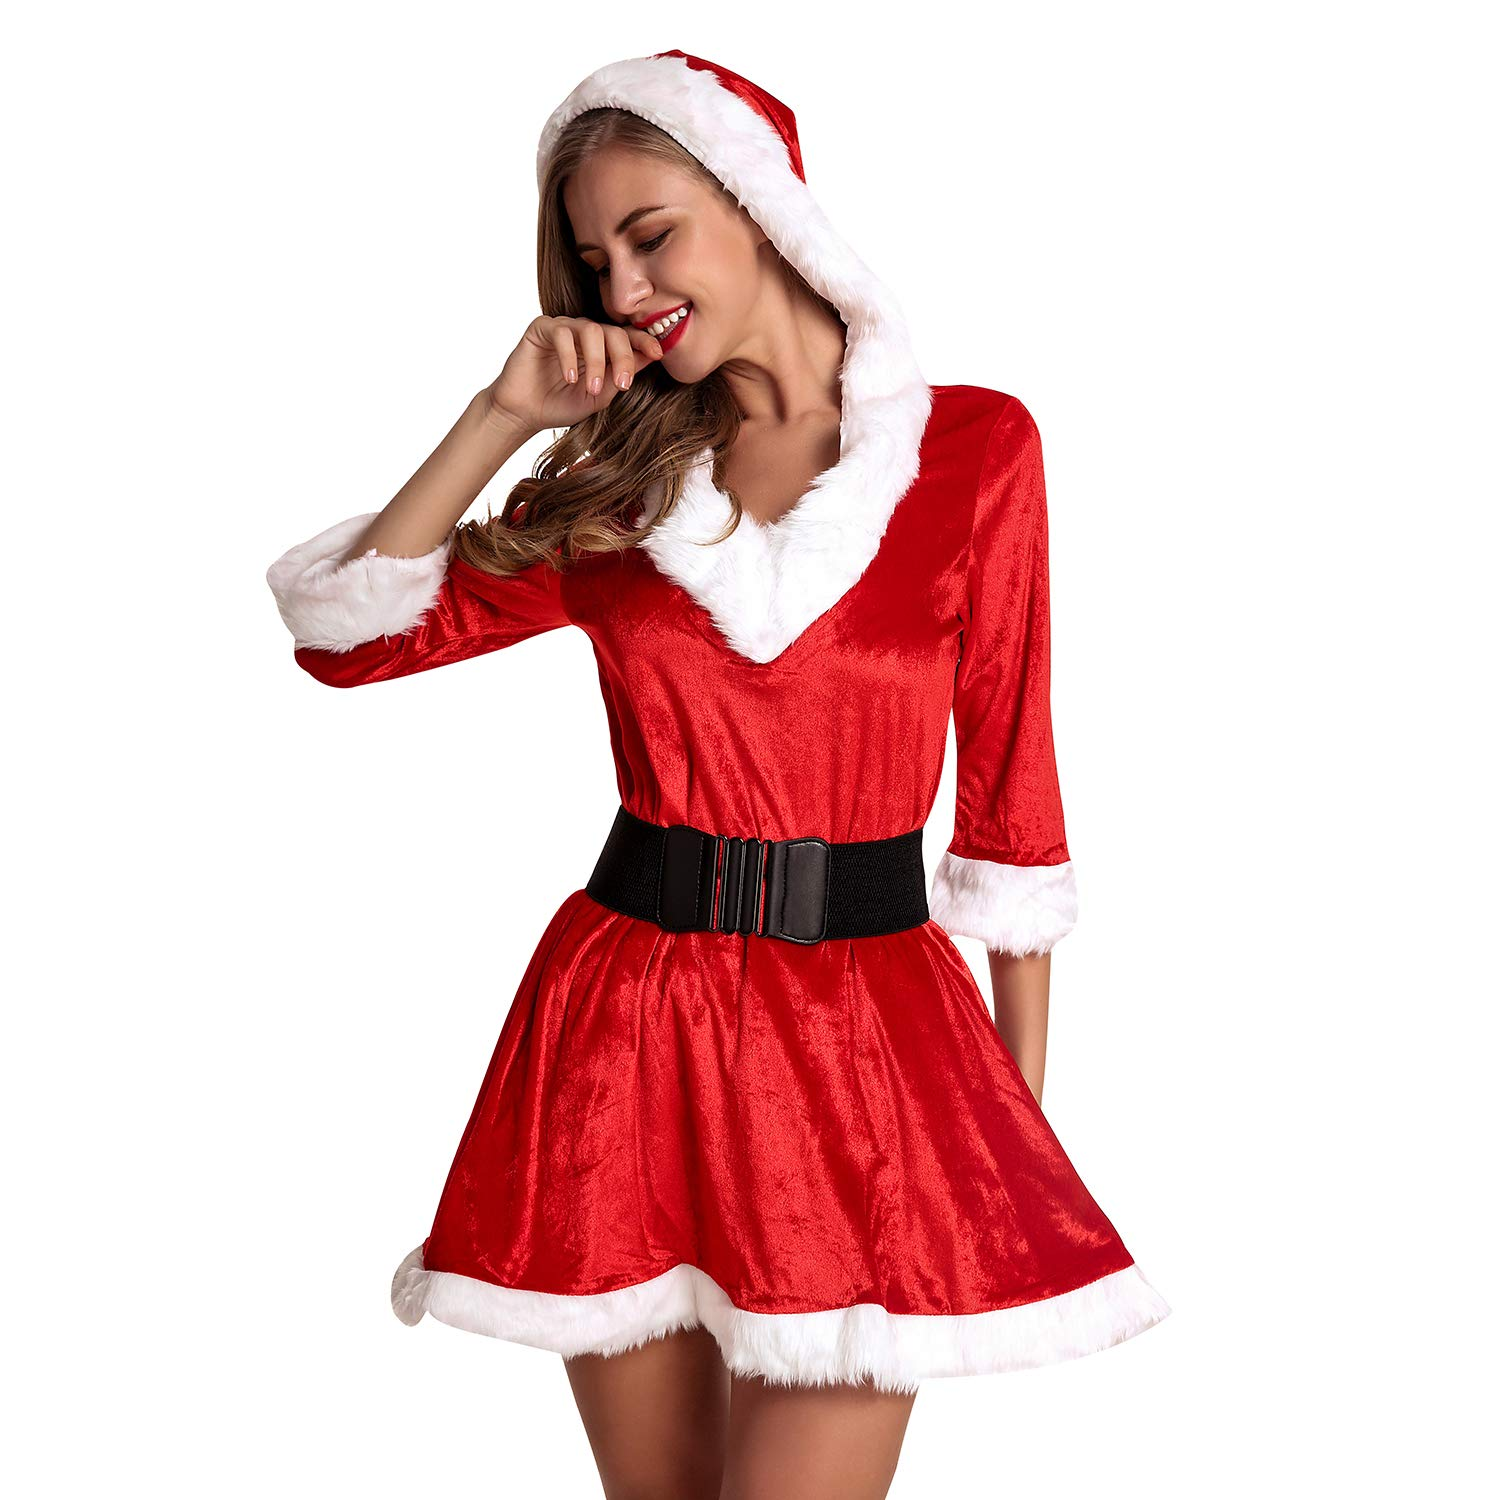 c42313a81cd7 Amazon.com: Defitshape Women's Christmas Costume Dress Set Mrs. Santa Claus  Red 2 Piece Petticoat Outfits Red One Size fits S/M/L: Clothing